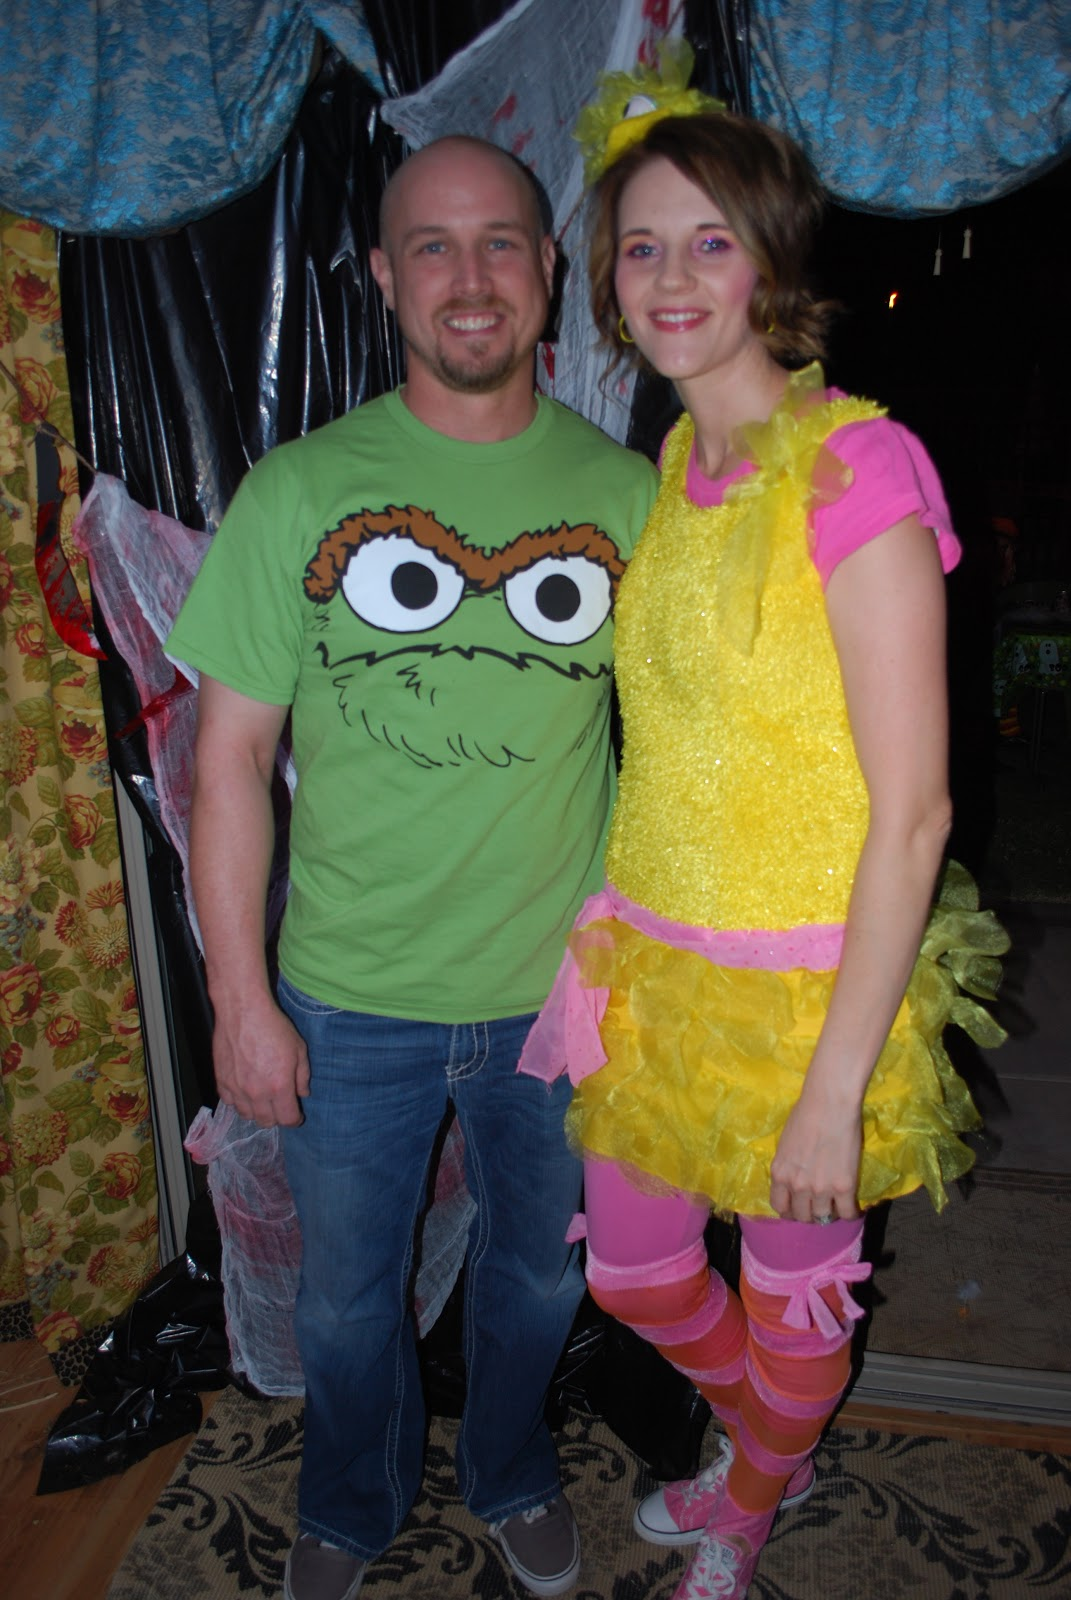 creative urges creative blogspot best homemade costume ideas best halloween costume ideascouple costume ideas part 2 - Good Halloween Costumes Homemade